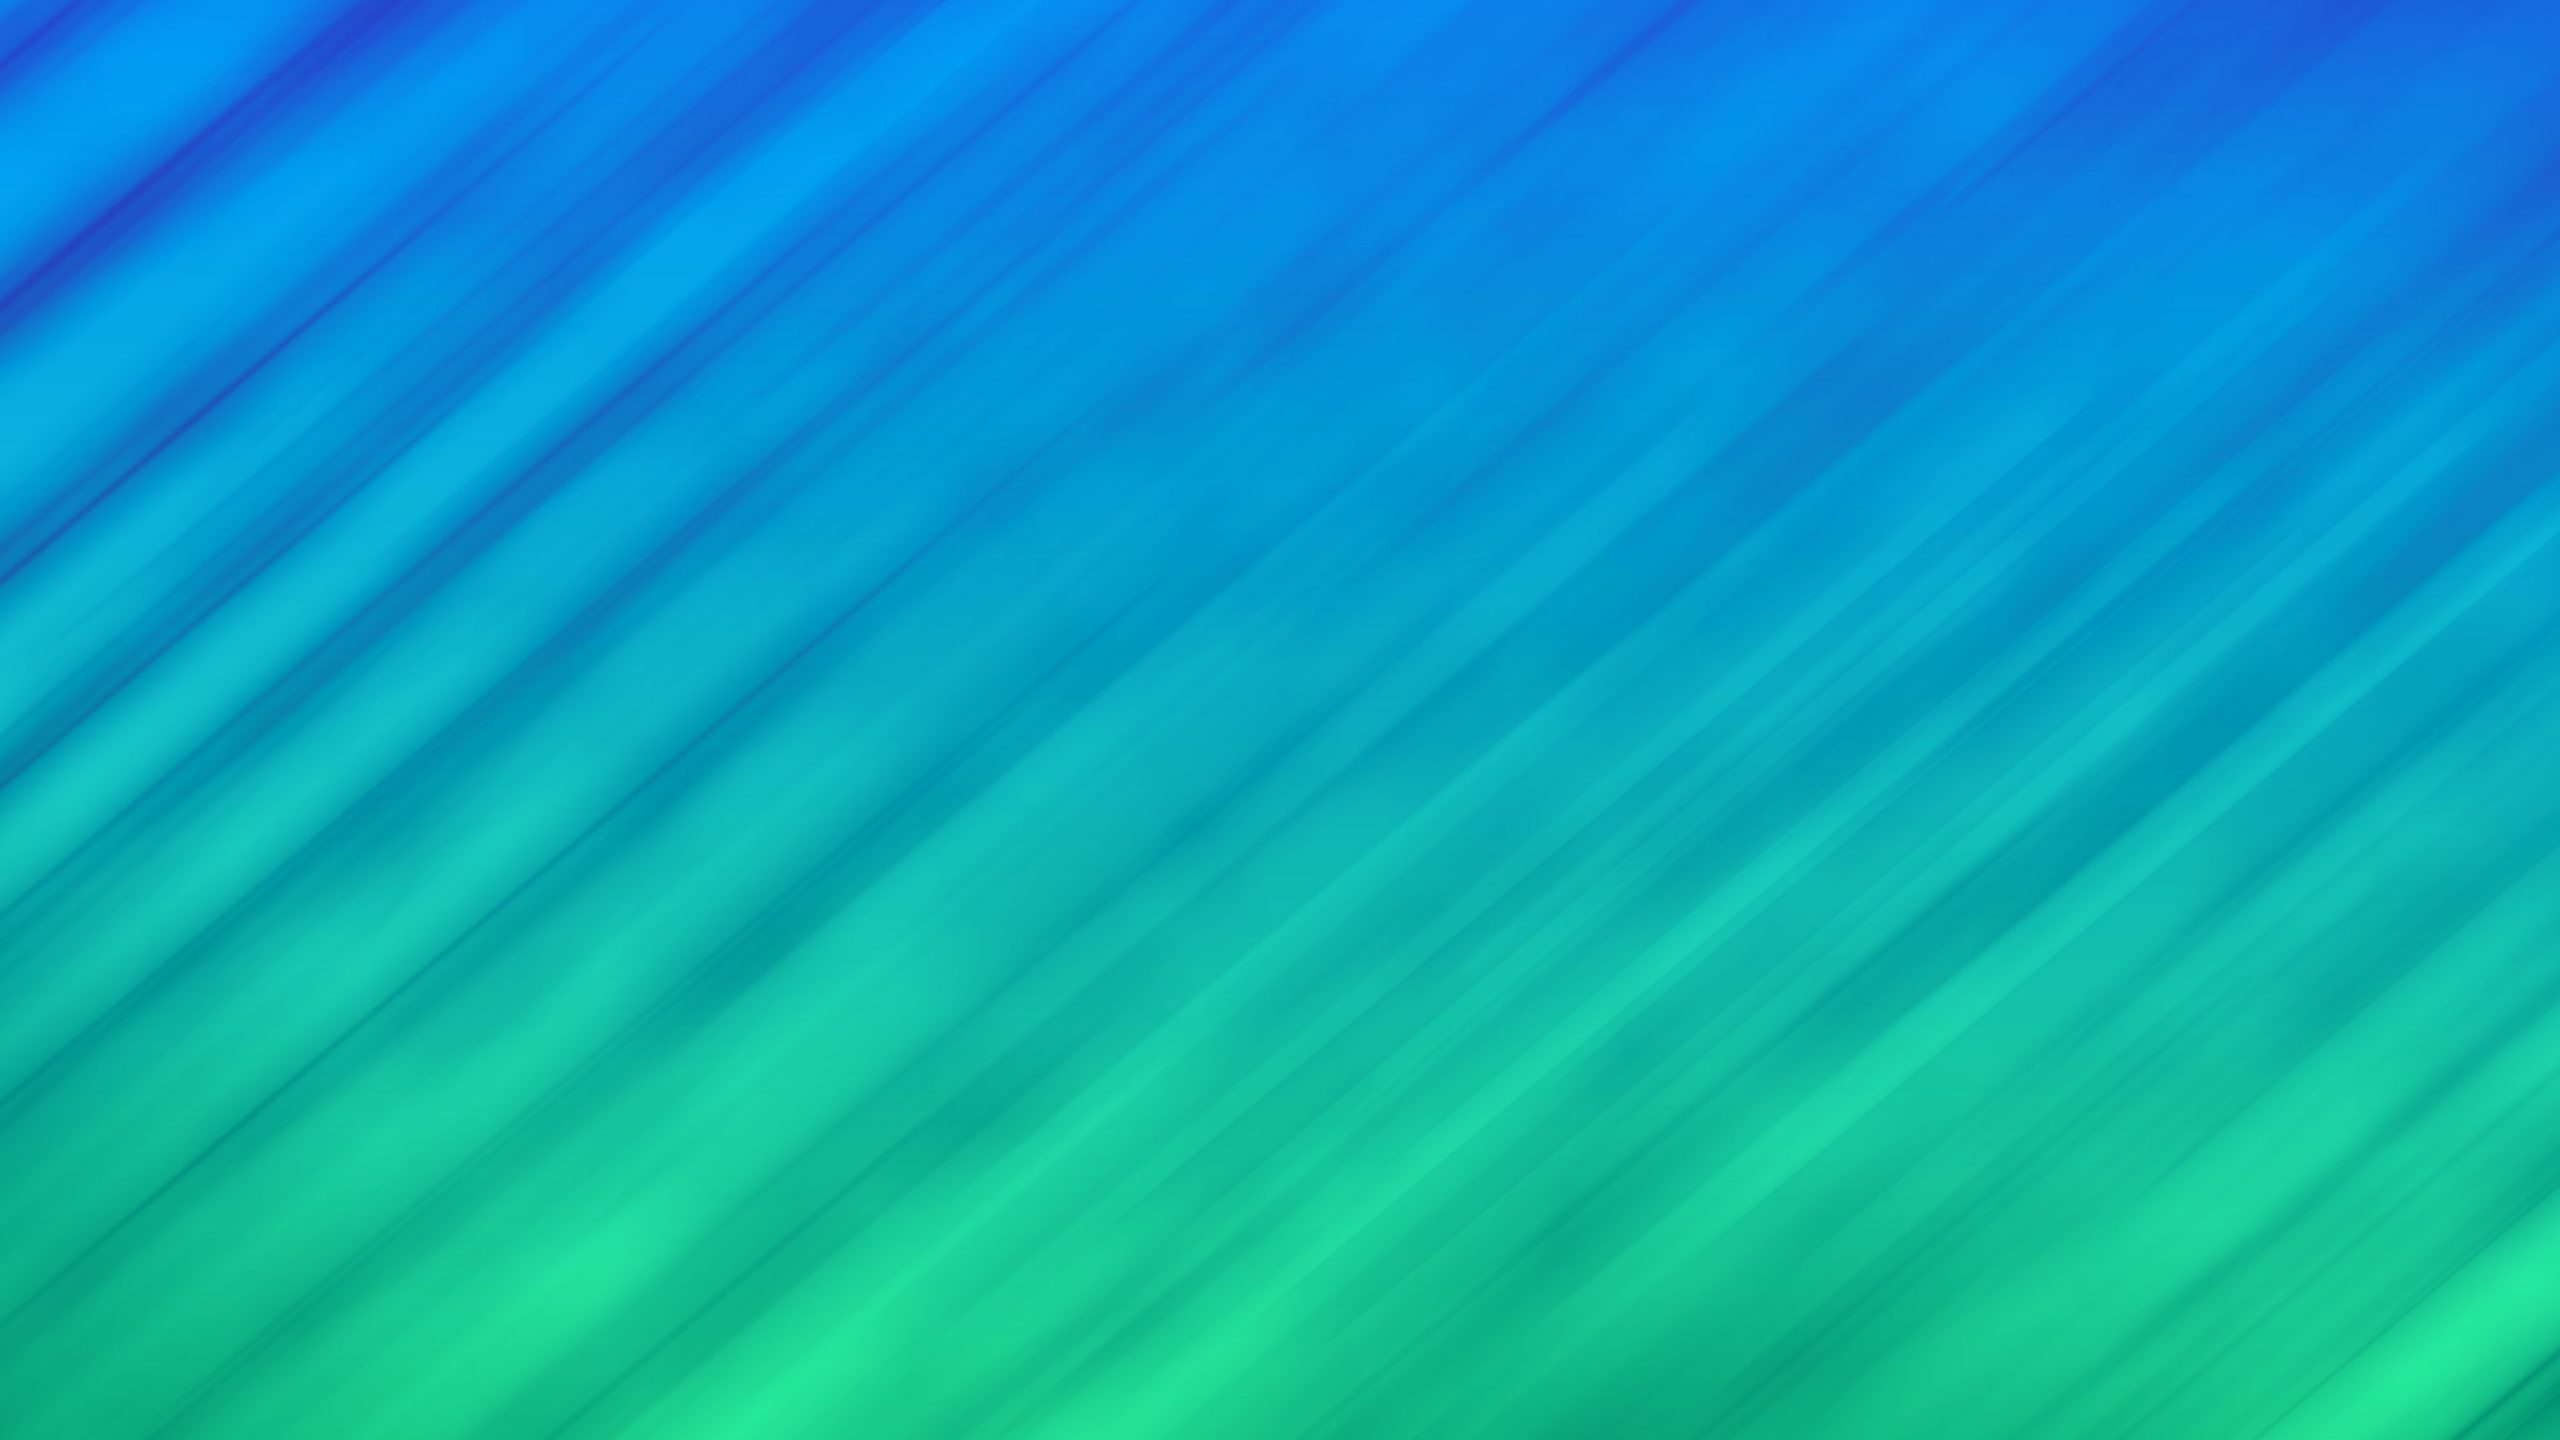 Green and blue background wallpaper